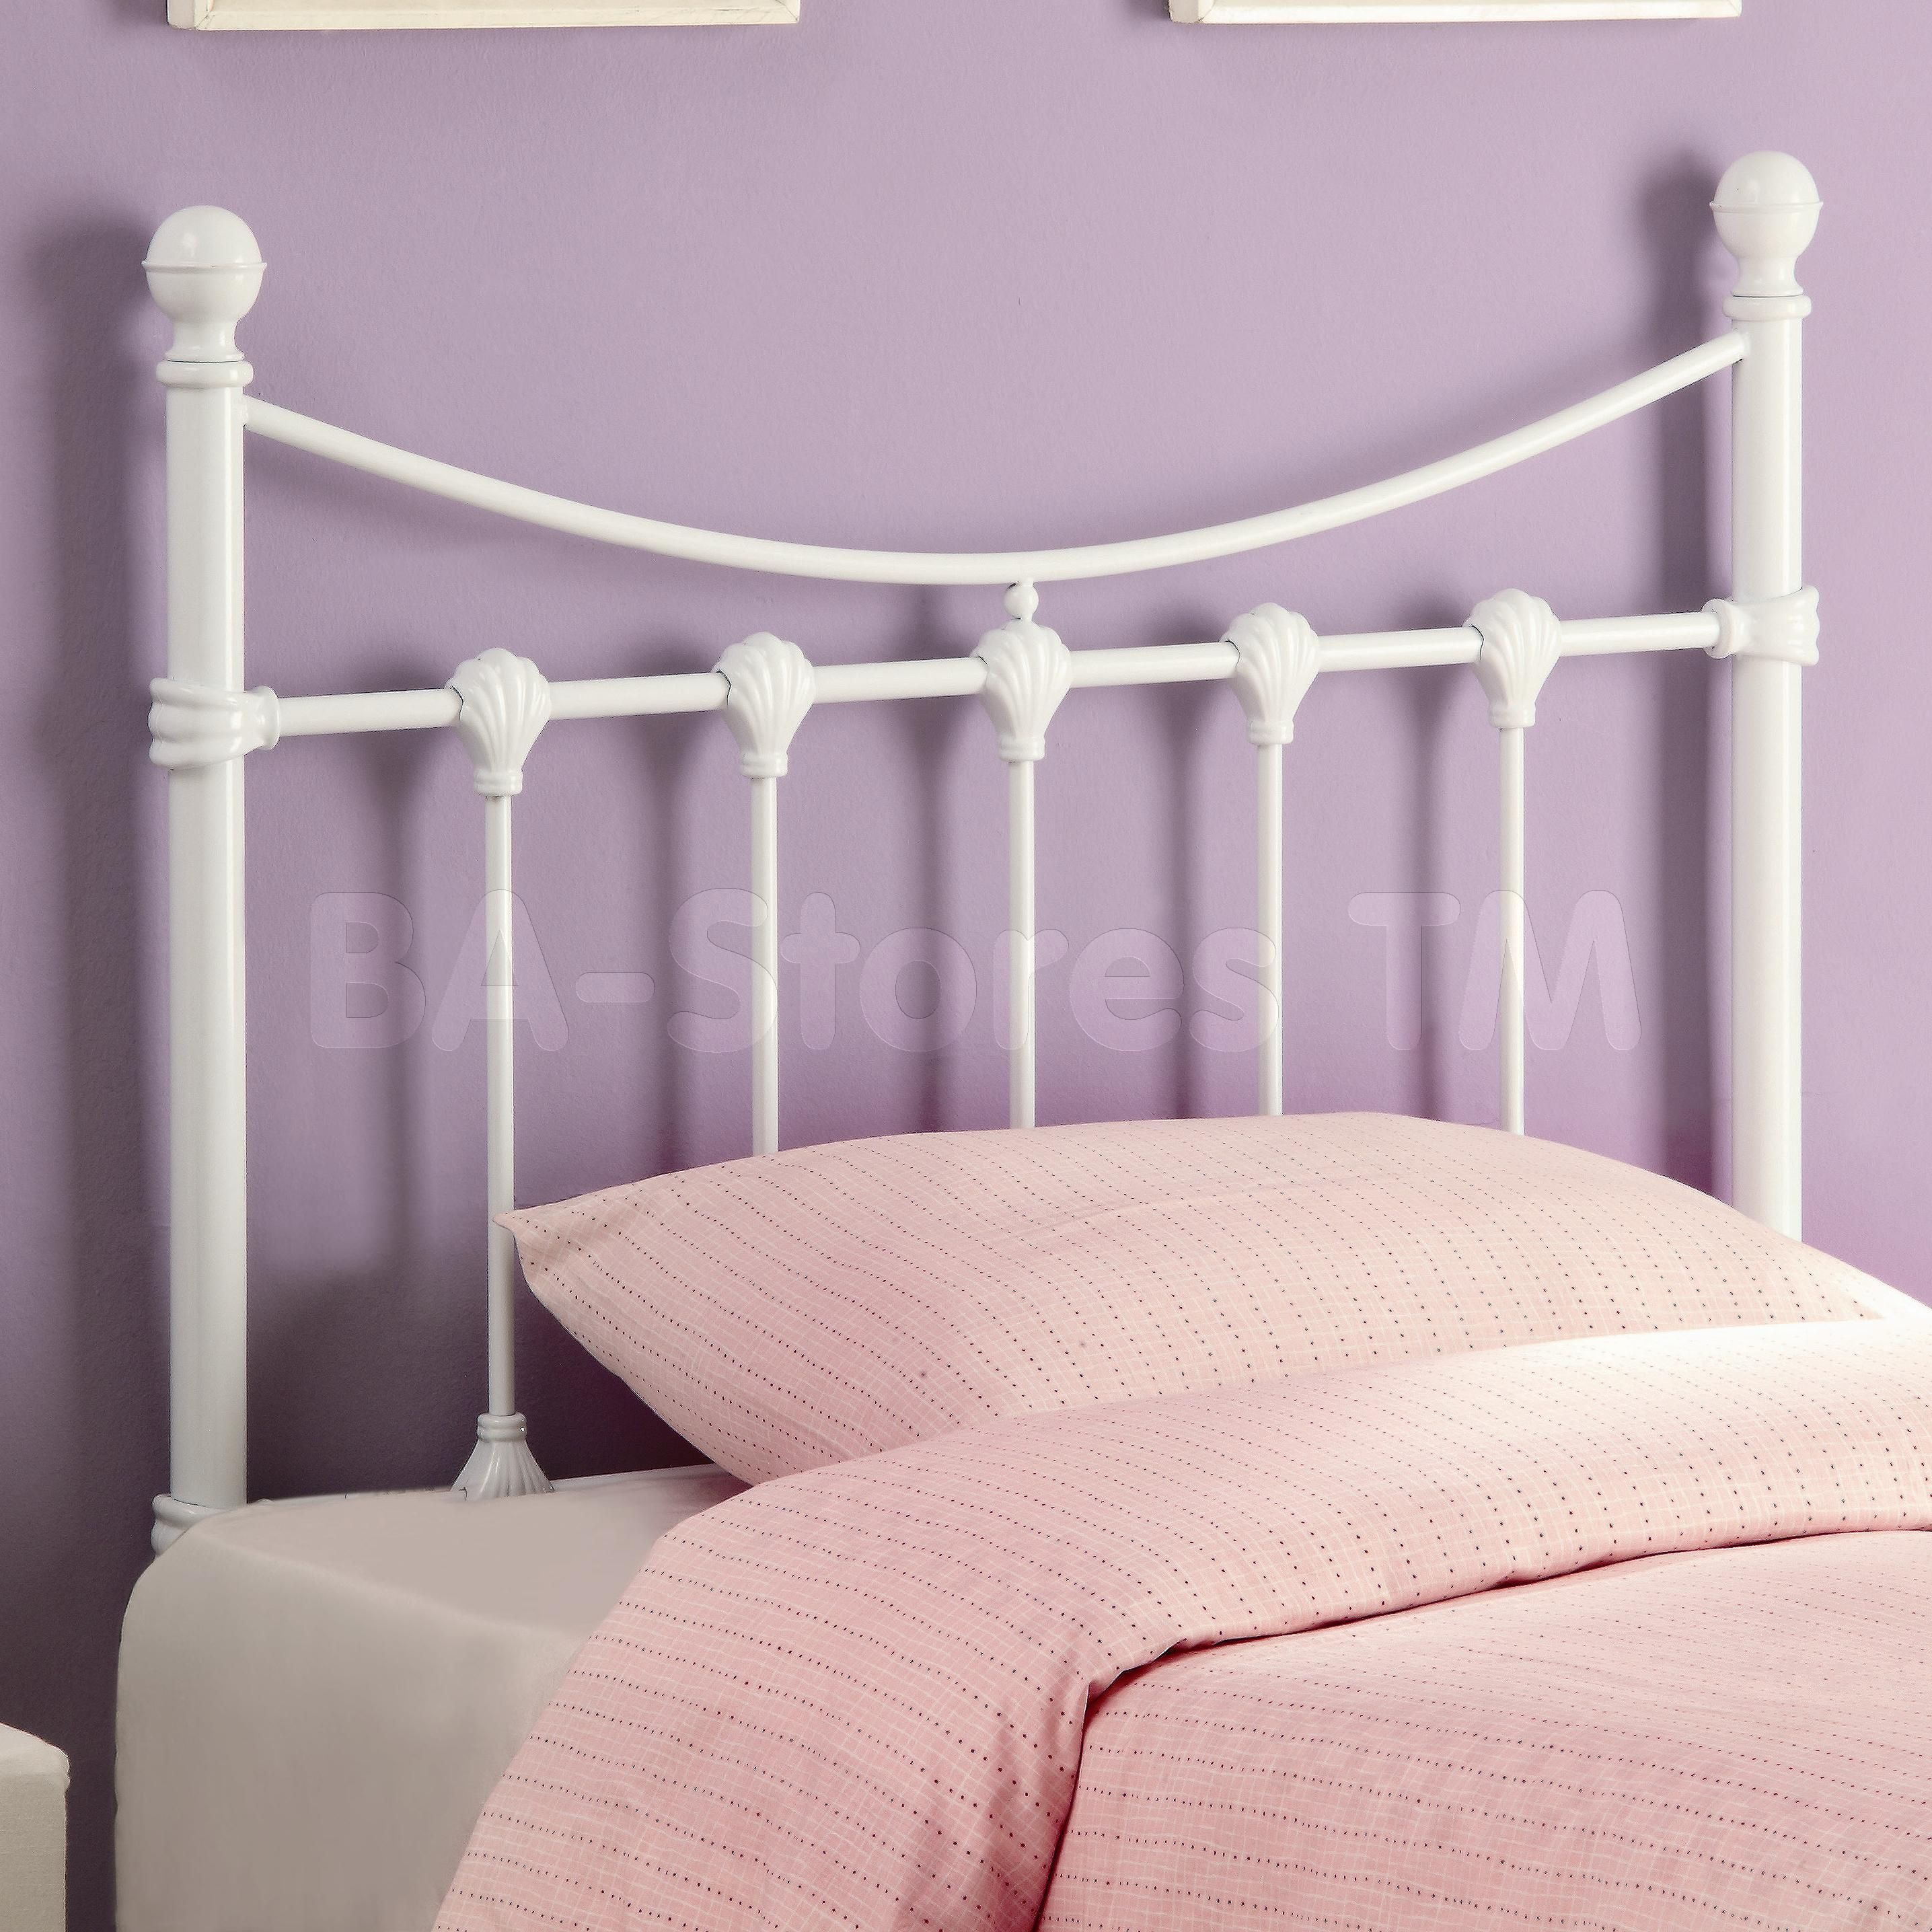 Twin White Metal Headboards Queen With Pink Cushions For Kids